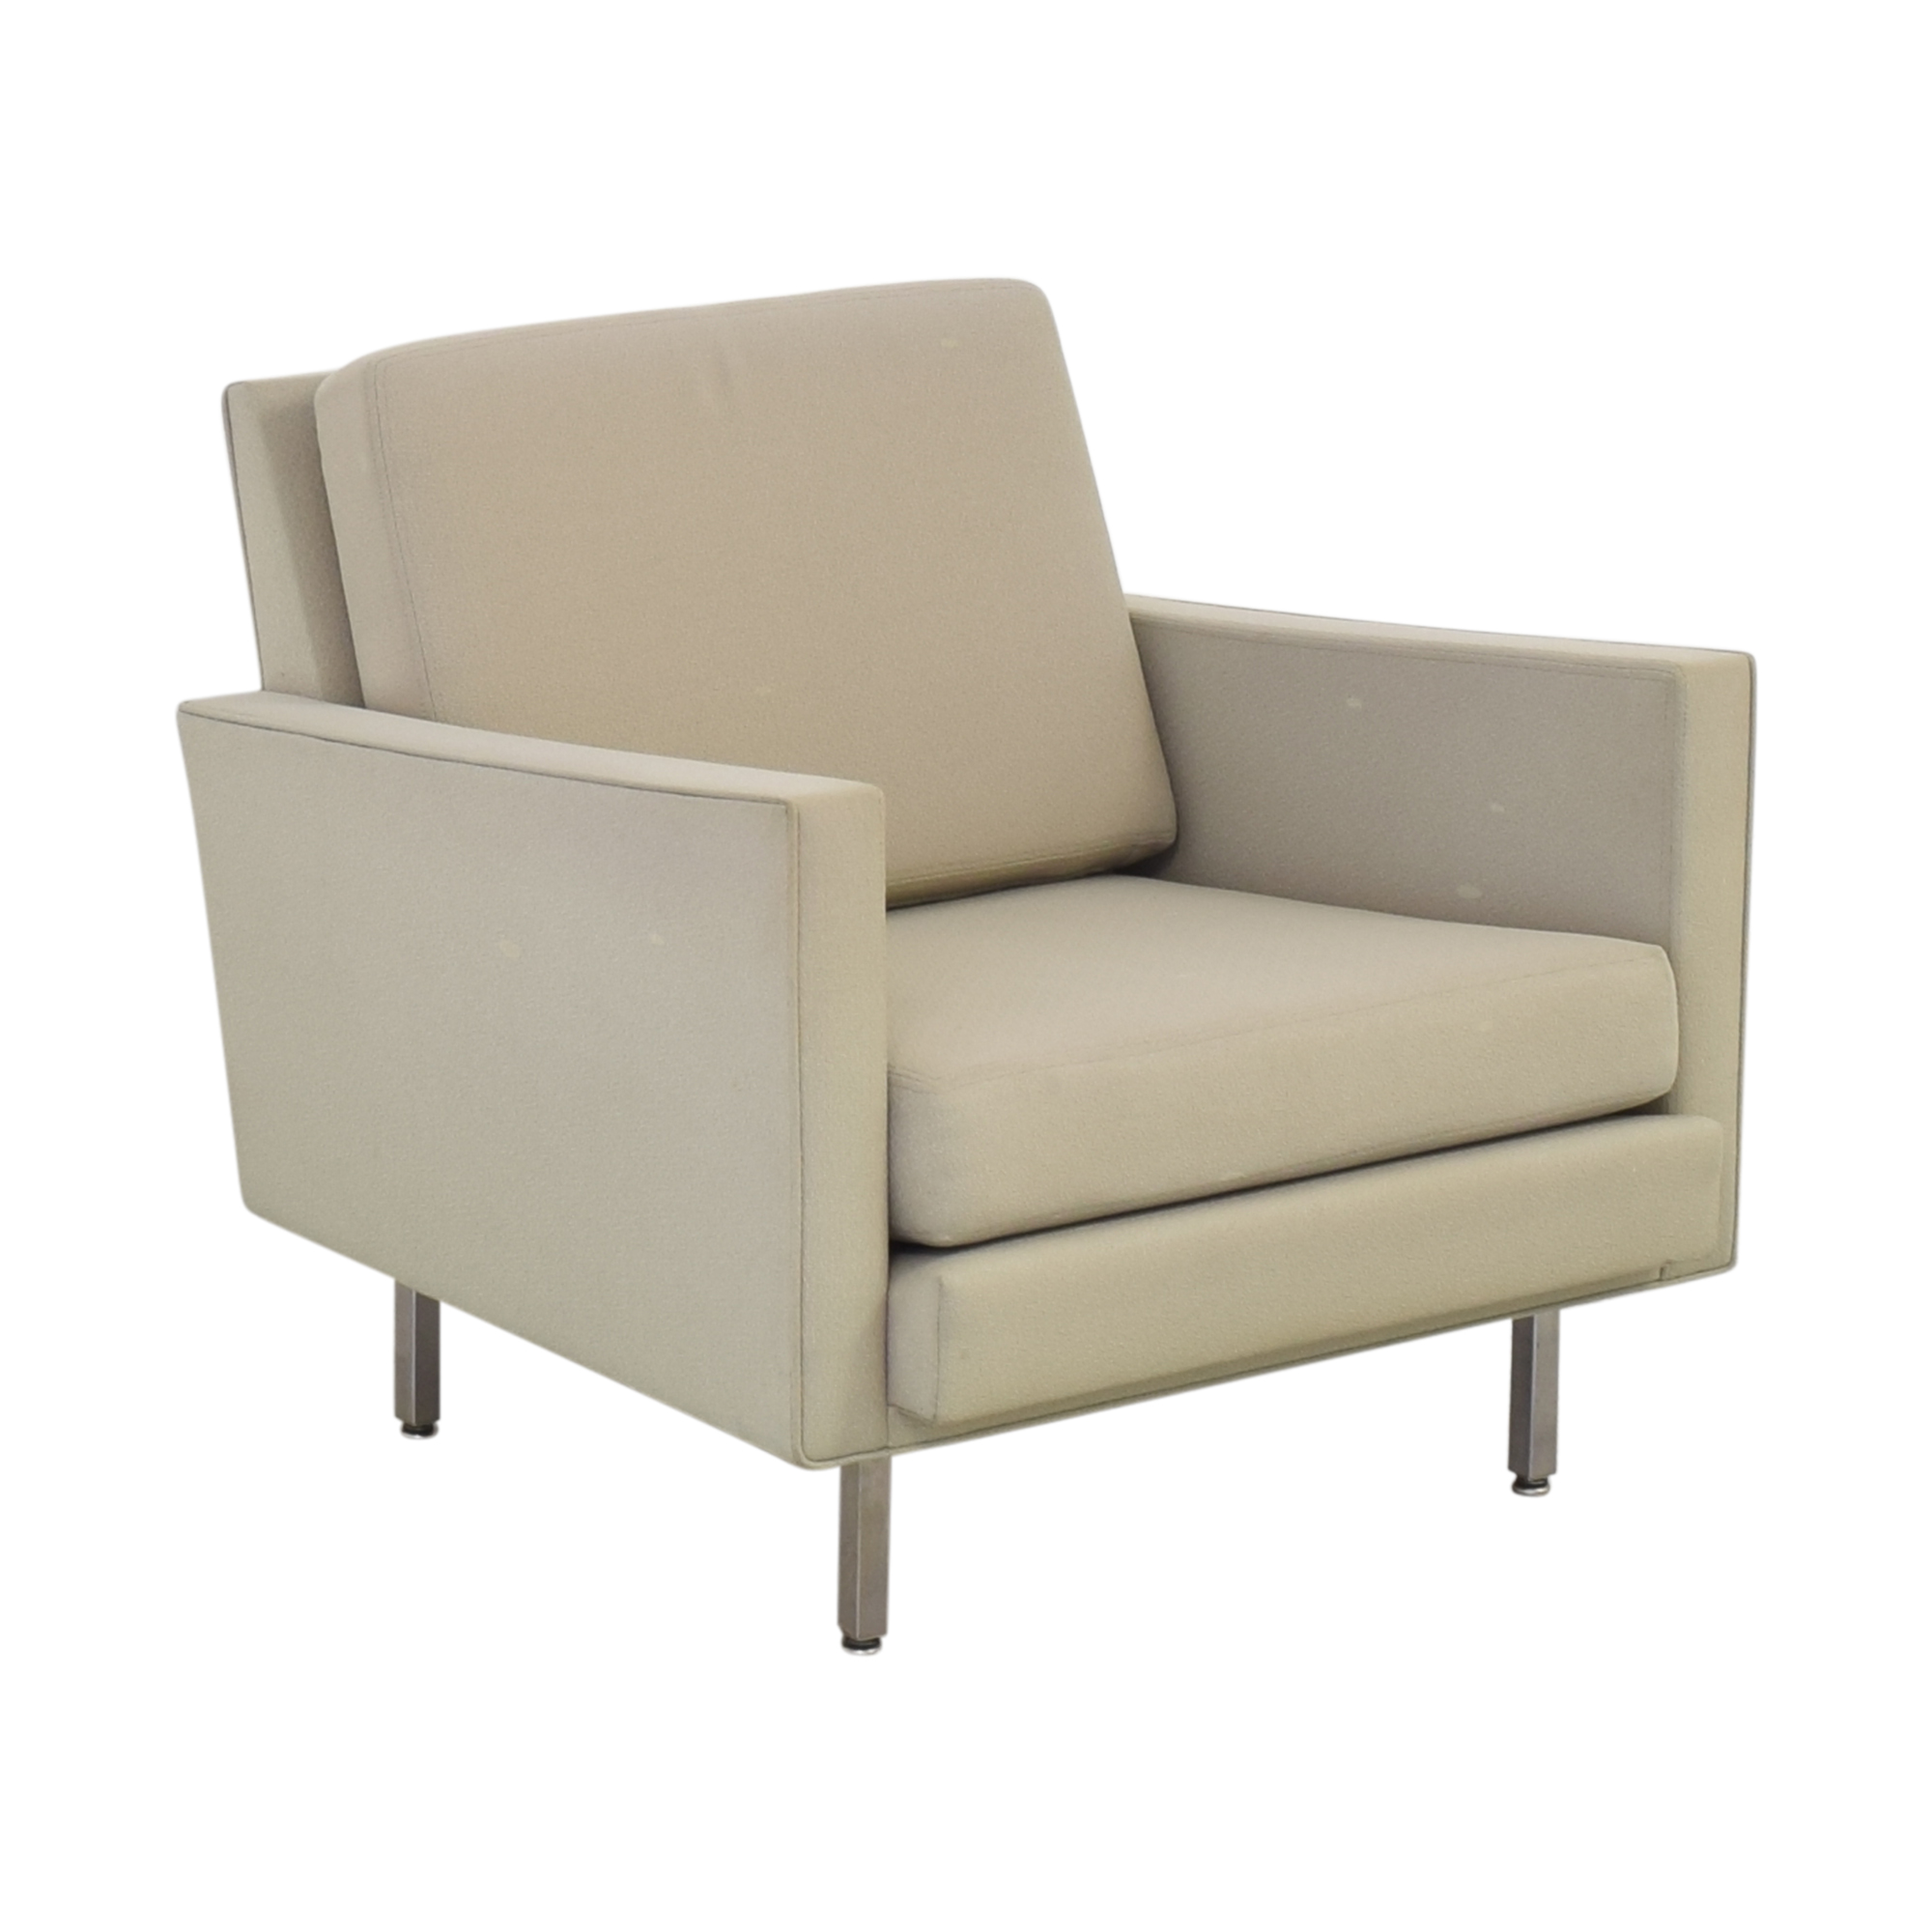 buy Modernica Case Study Furniture Chair Modernica Accent Chairs